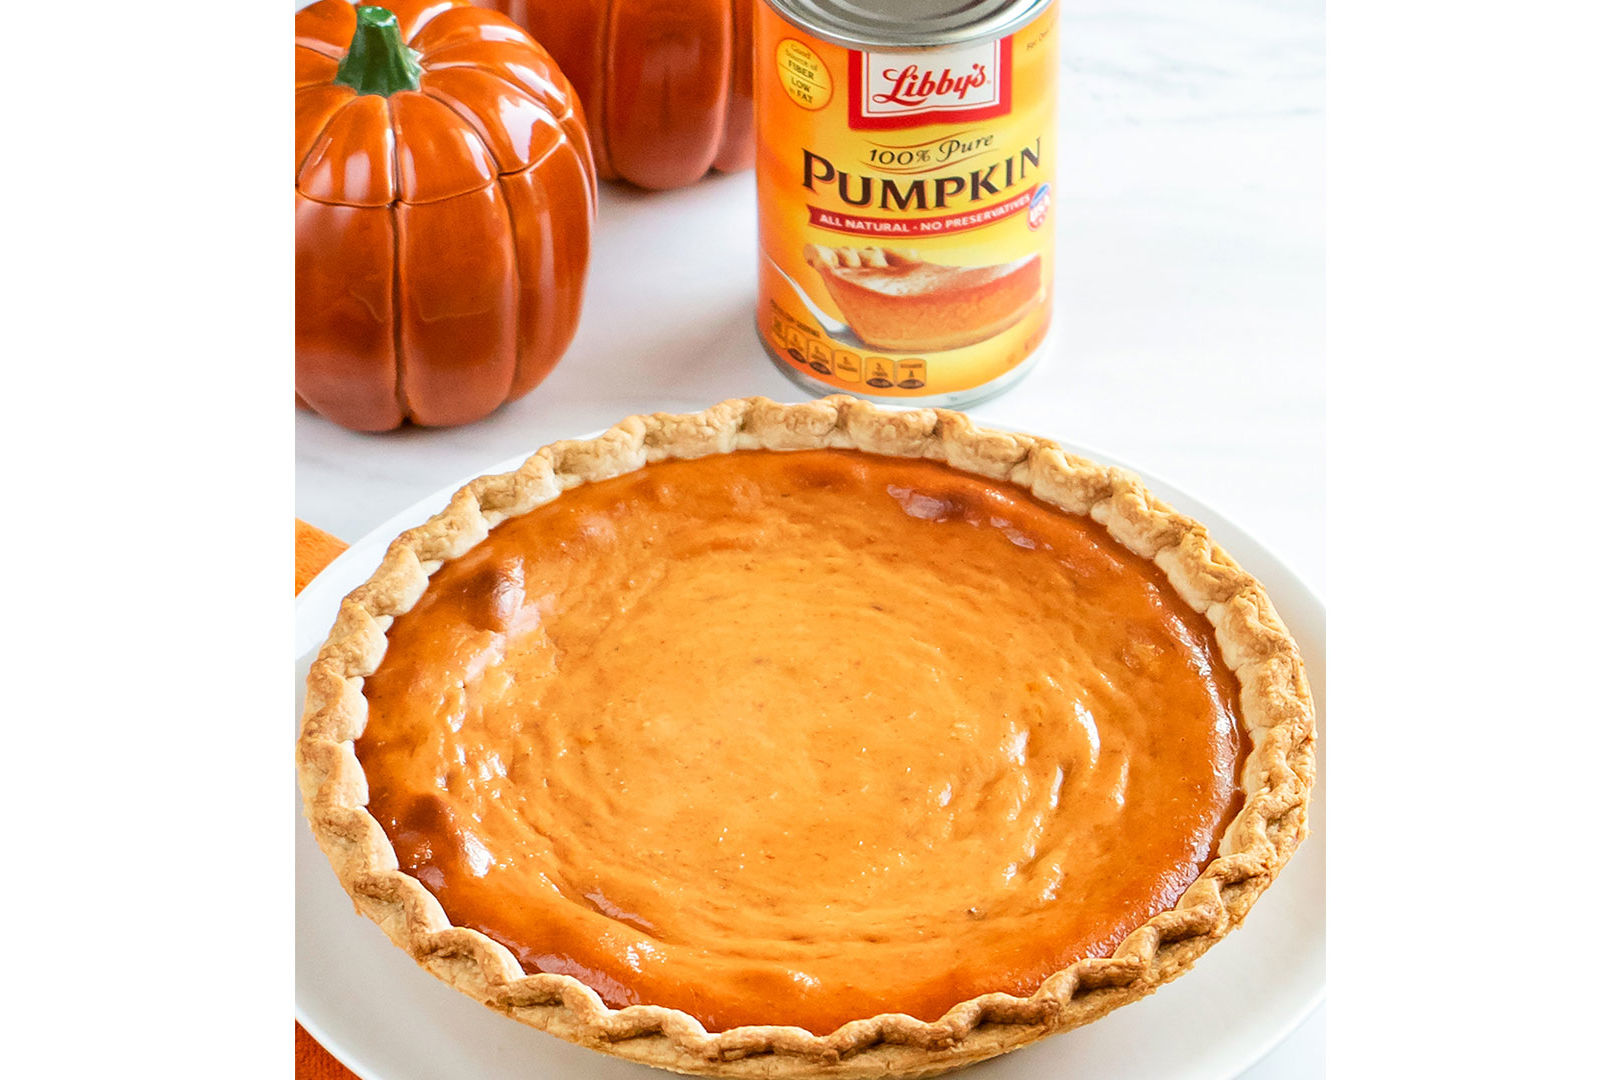 New Libby's Pumpkin Pie